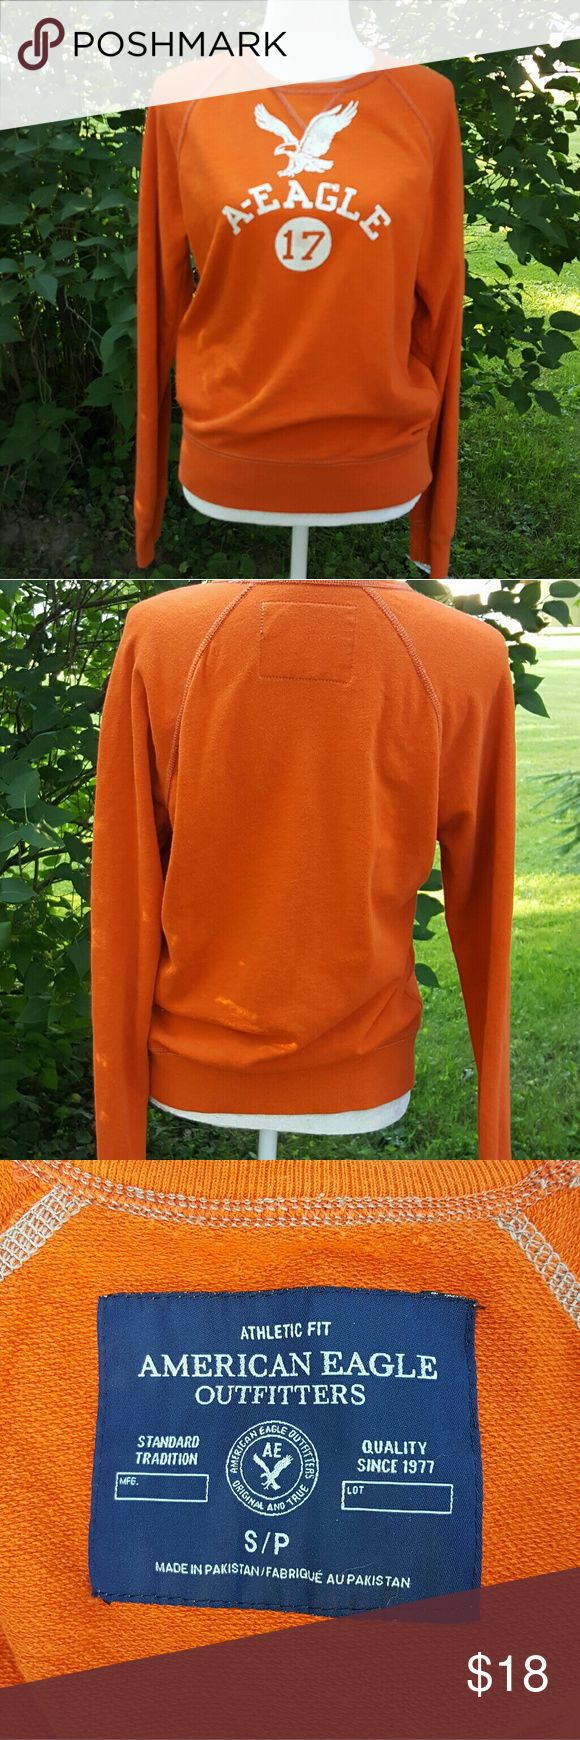 American Eagle Outfitter orange sweatshirt American Eagle Outfitter orange sweatshirt logo on front. size small runs big looks like it would fit a medium excellent condition American Eagle outfitters  Tops Sweatshirts & Hoodies